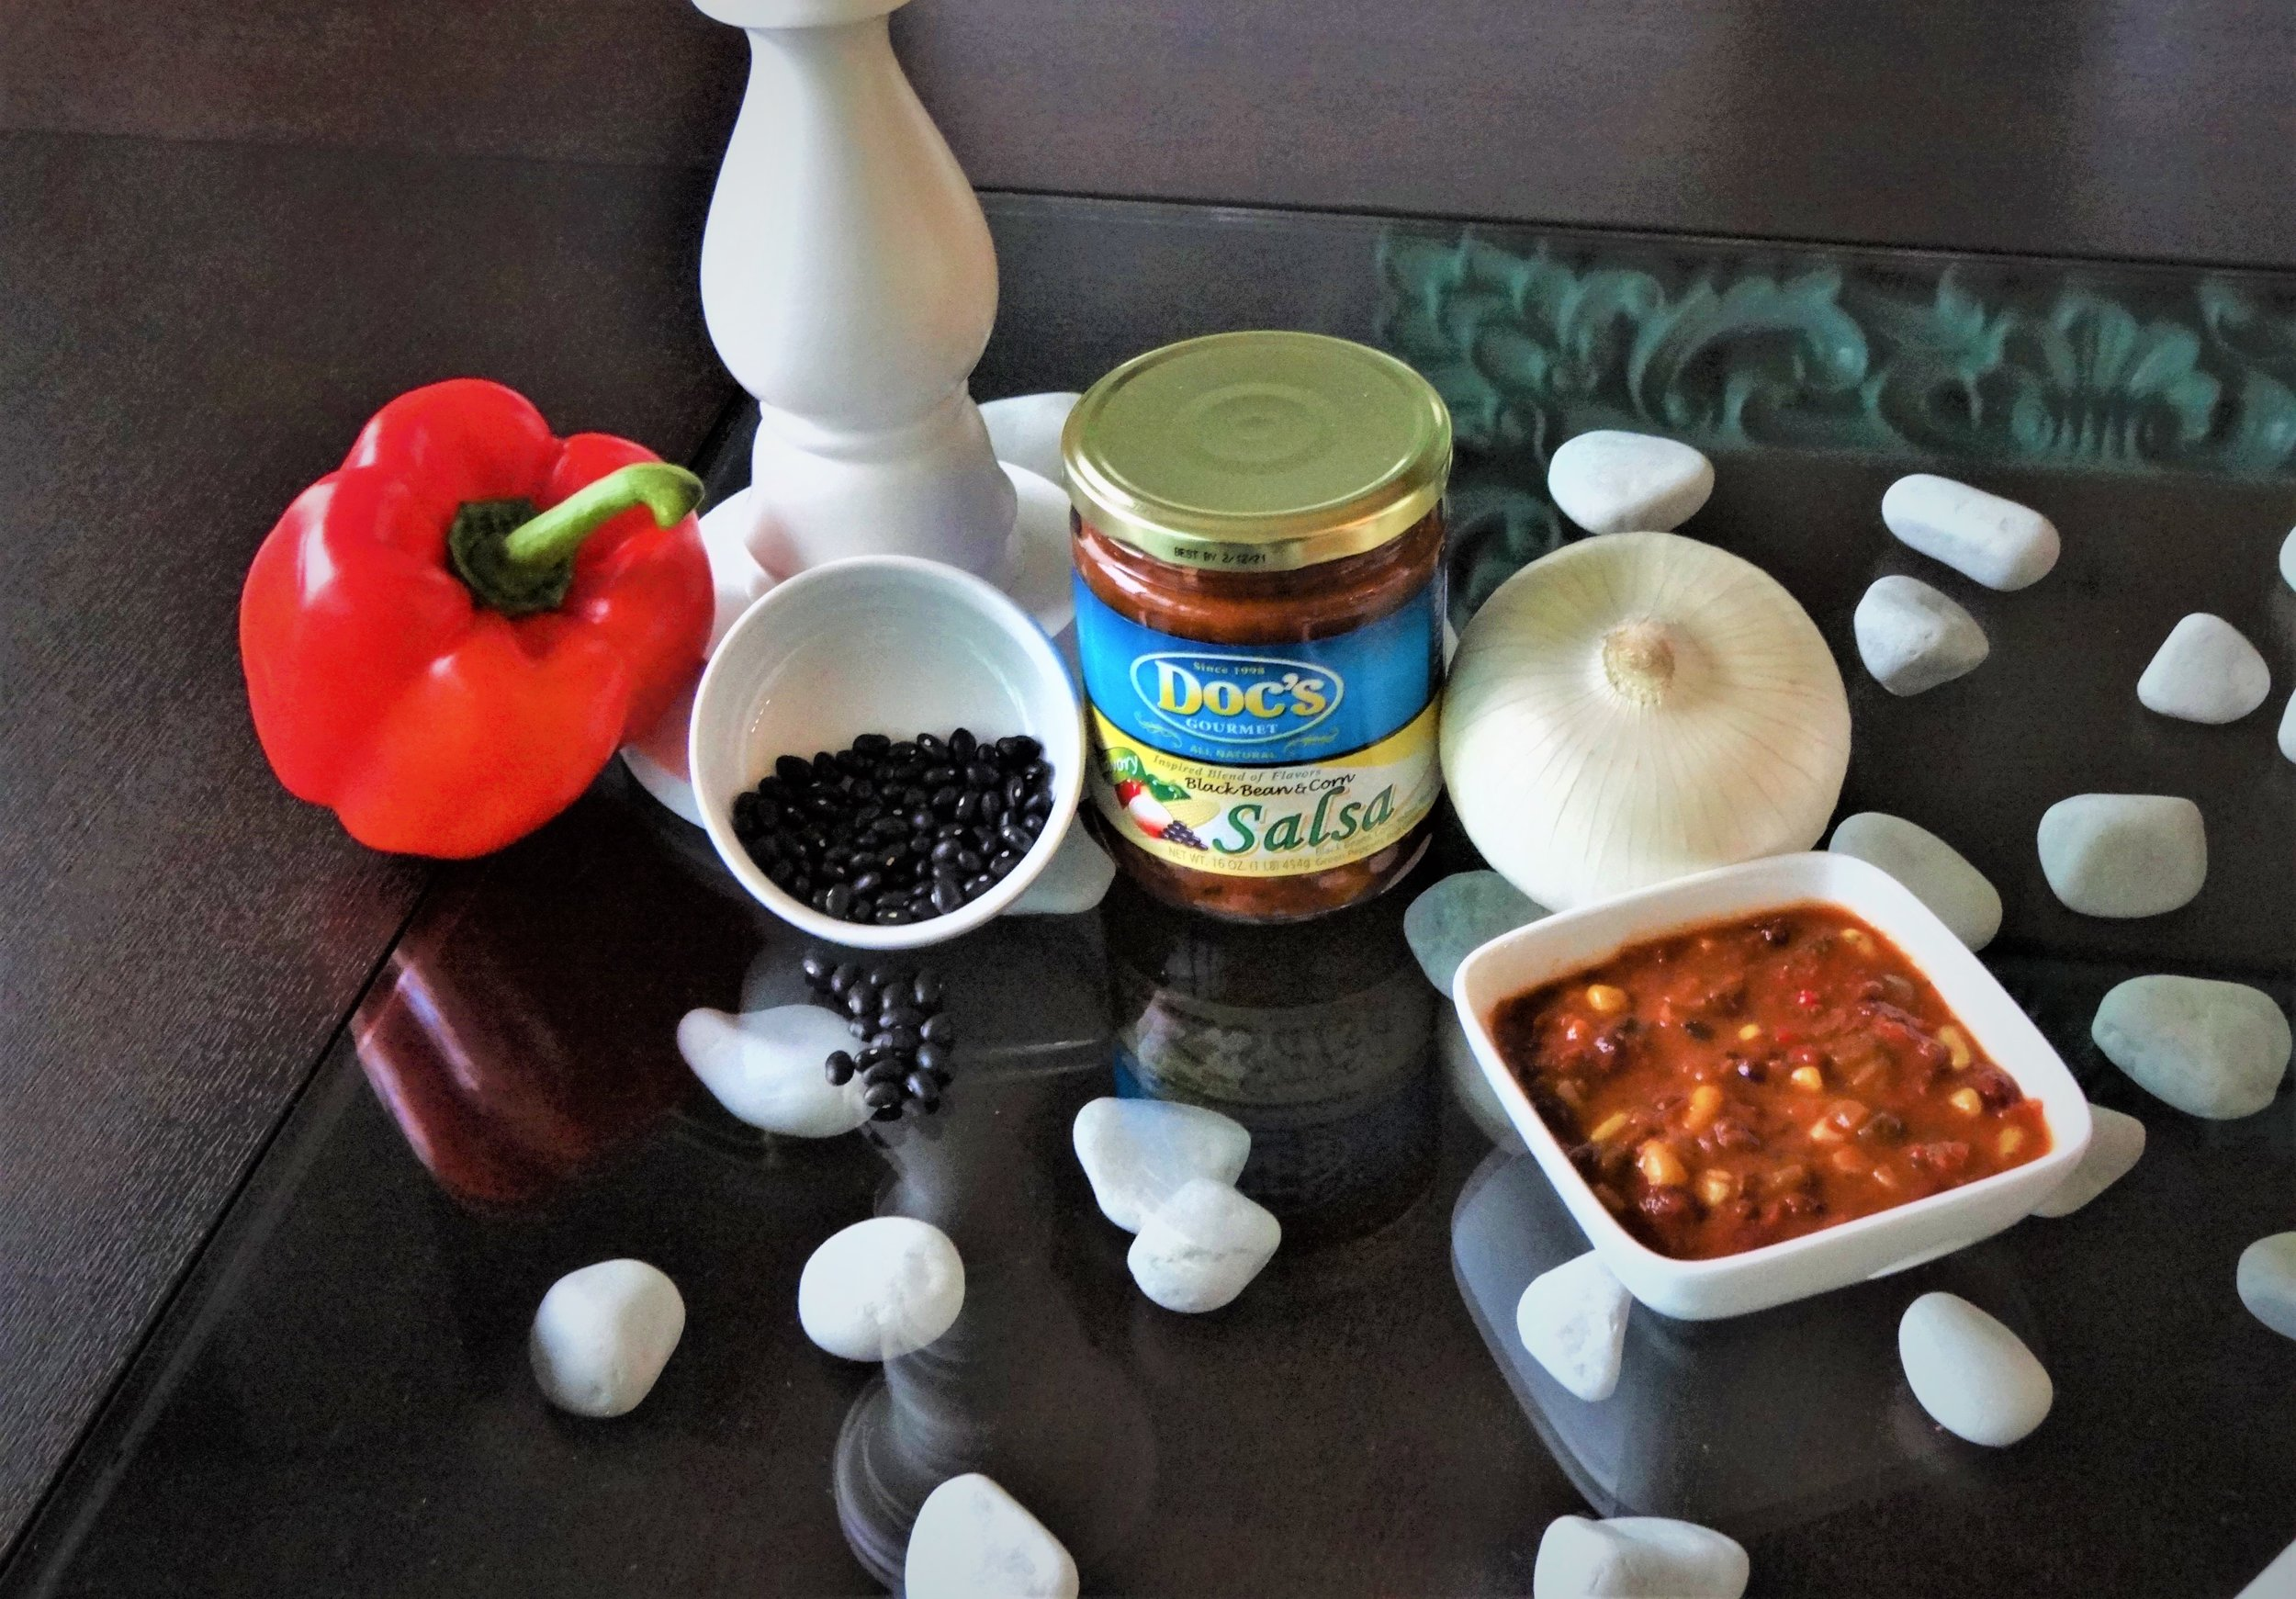 Doc's Black Bean & Corn Salsa - A mild savory blend of tomatoes, and peppers, with the fresh taste of corn and black beans that you can actually see and appreciate.This special salsa is mild enough that everyone can enjoy it, (even your little ones) and it can be used to add just enough kick to any dish.